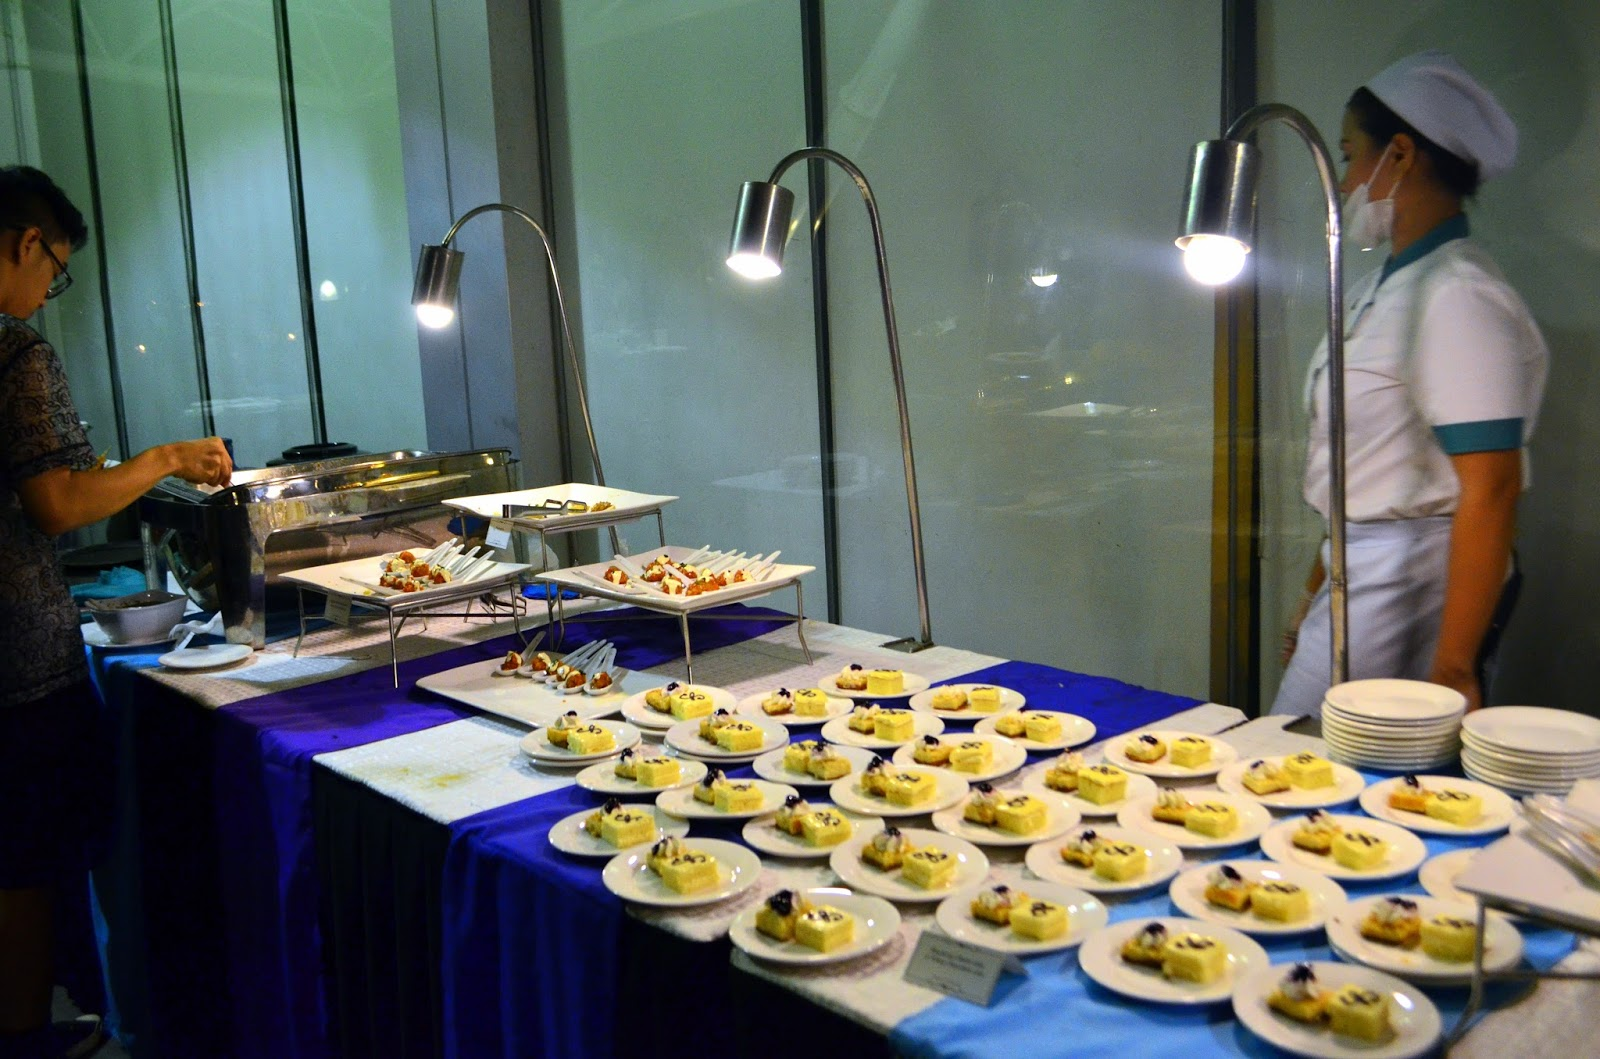 ILLUMINATE: Ignite the Light catering